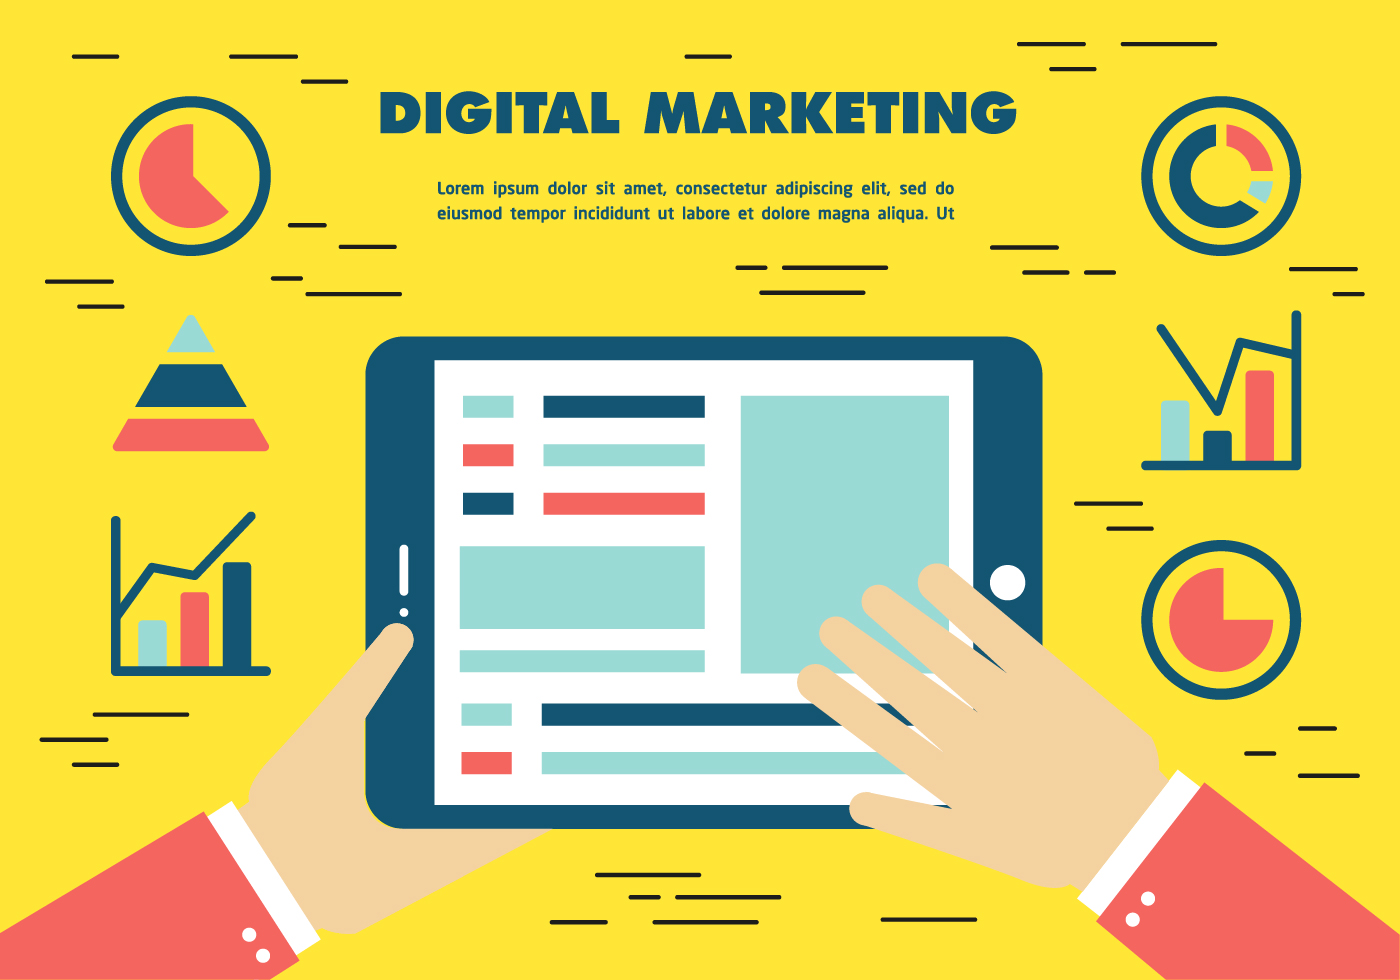 free-digital-marketing-vector.jpg